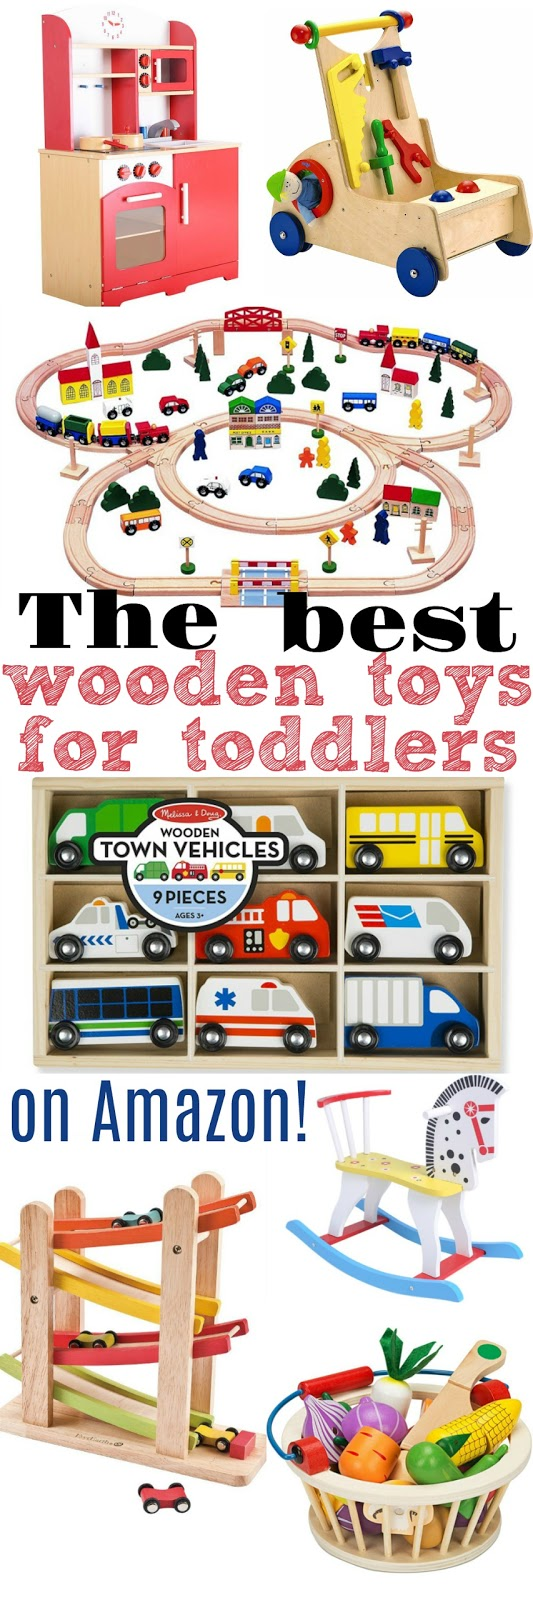 These wooden toys are great for toddlers to play and develop skills with